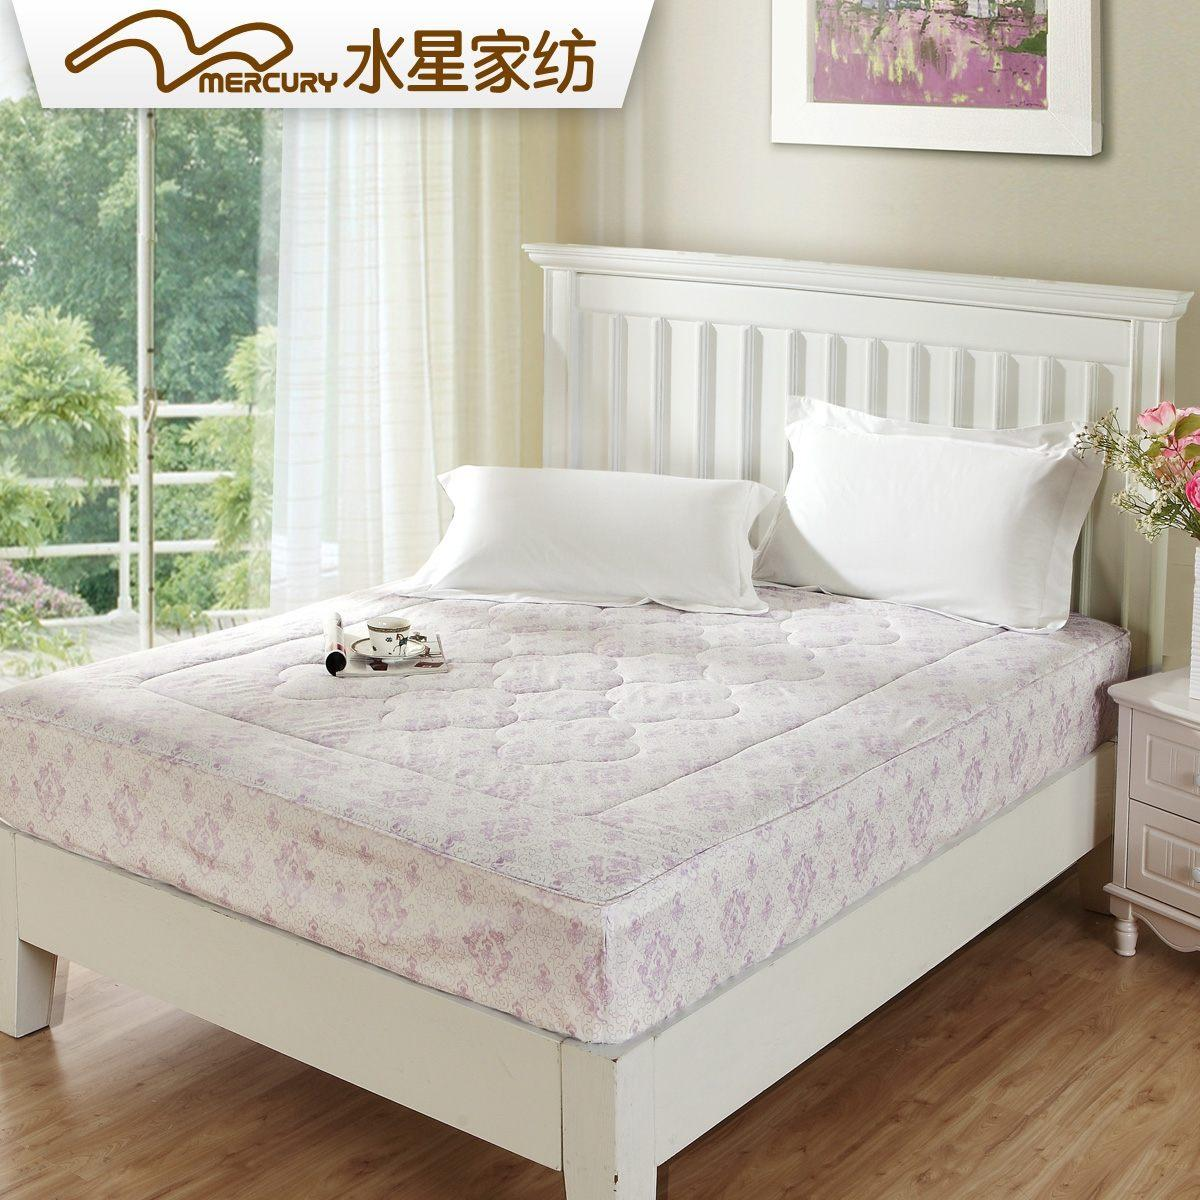 mercury textile matelas matelas lit pad matelas tatami amour confortable matelas pad dans. Black Bedroom Furniture Sets. Home Design Ideas